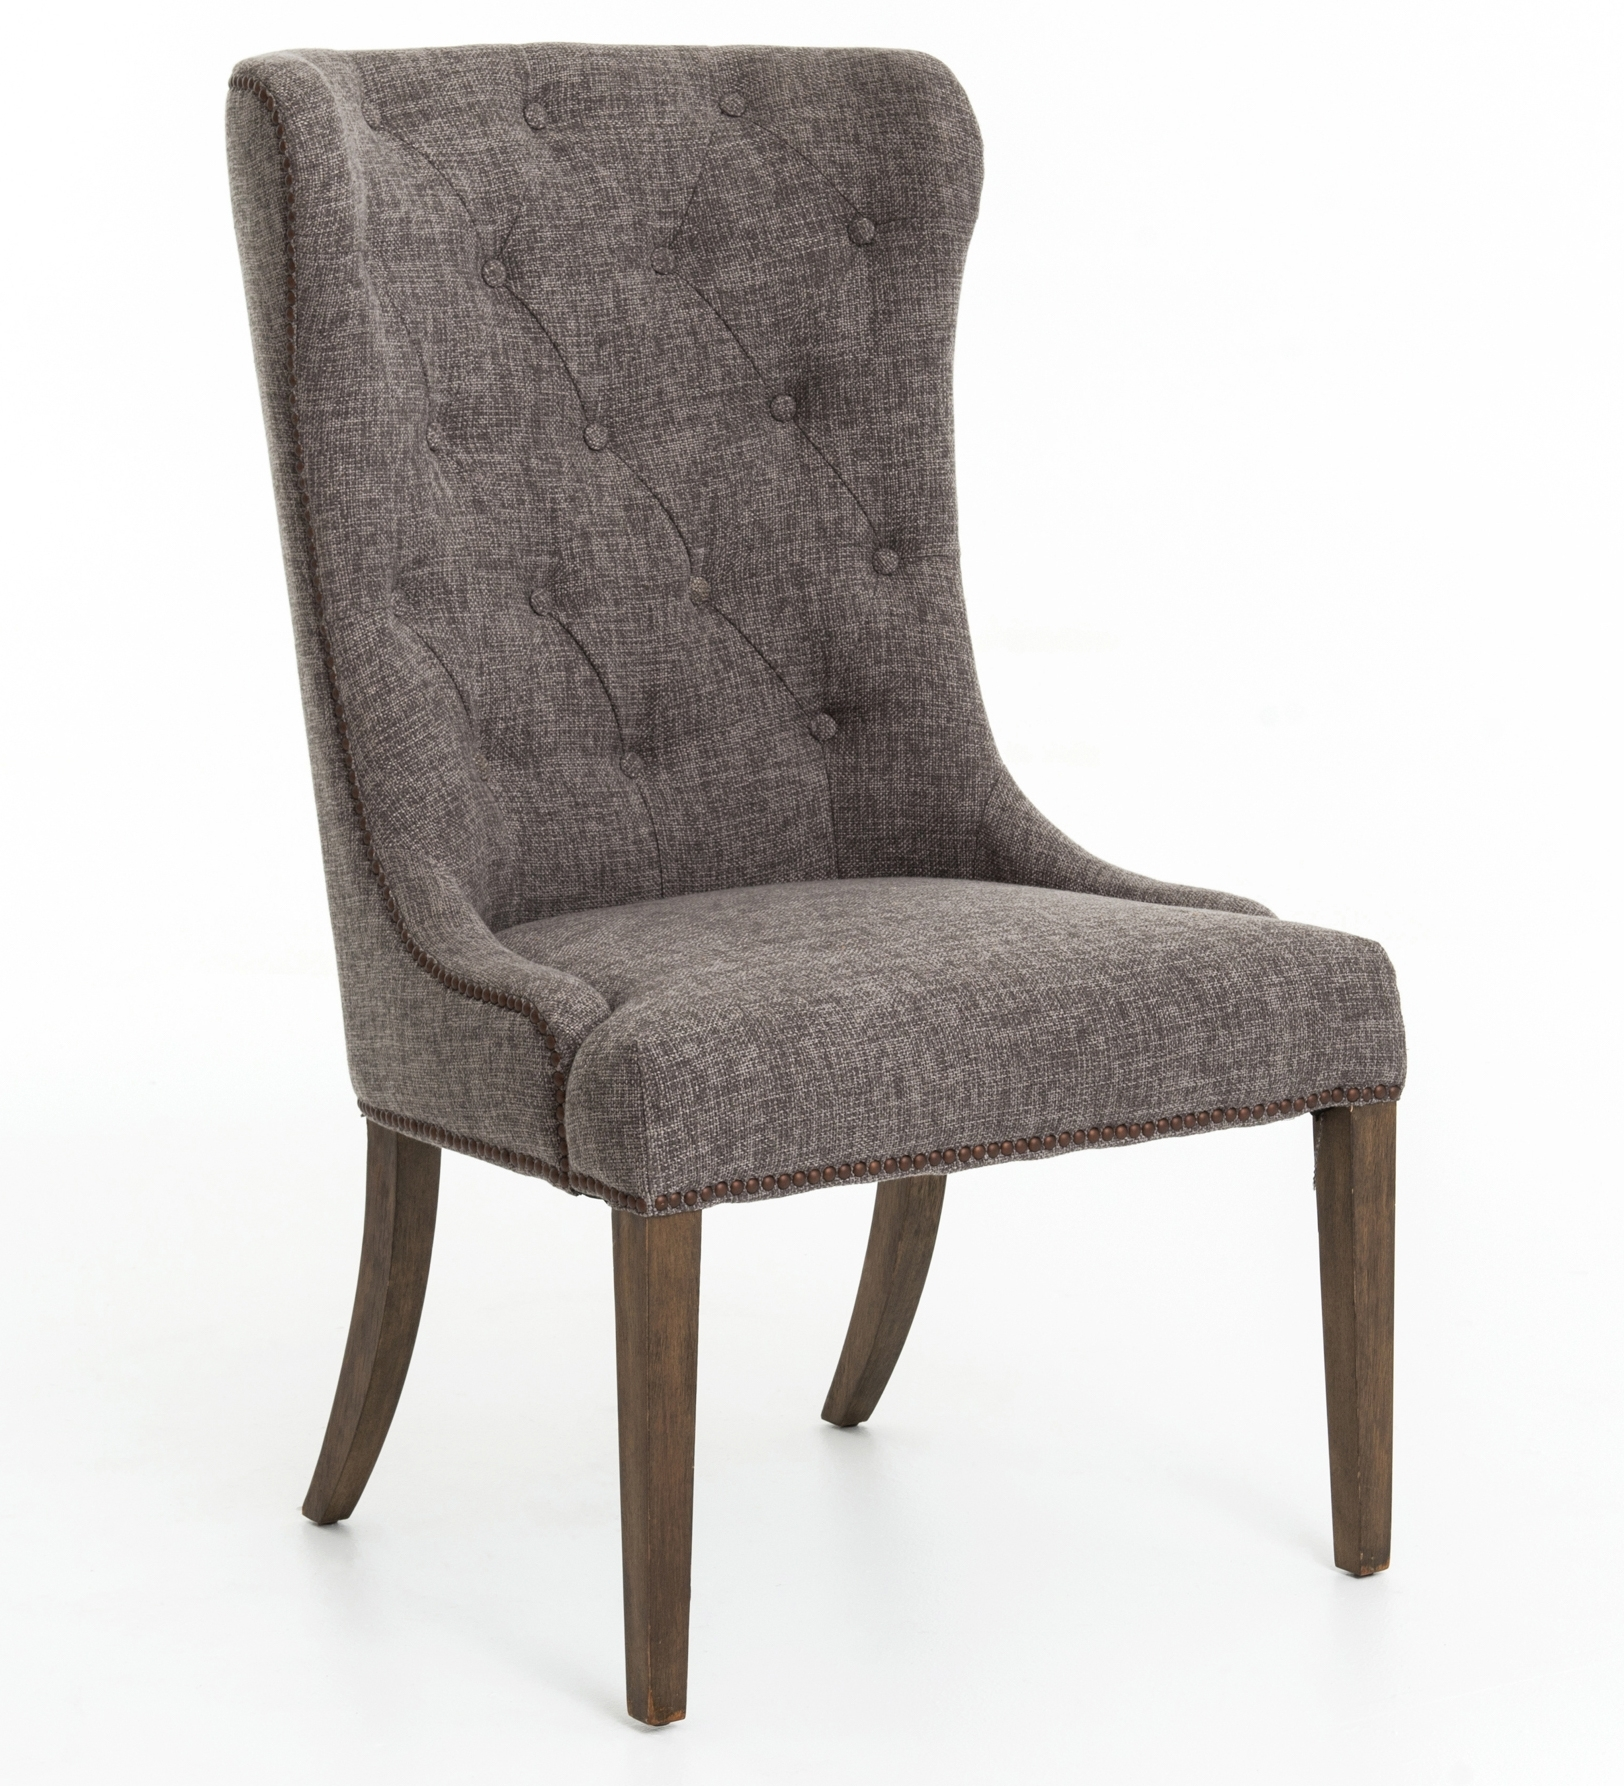 Shop Dining Room Chairs (View 8 of 20)